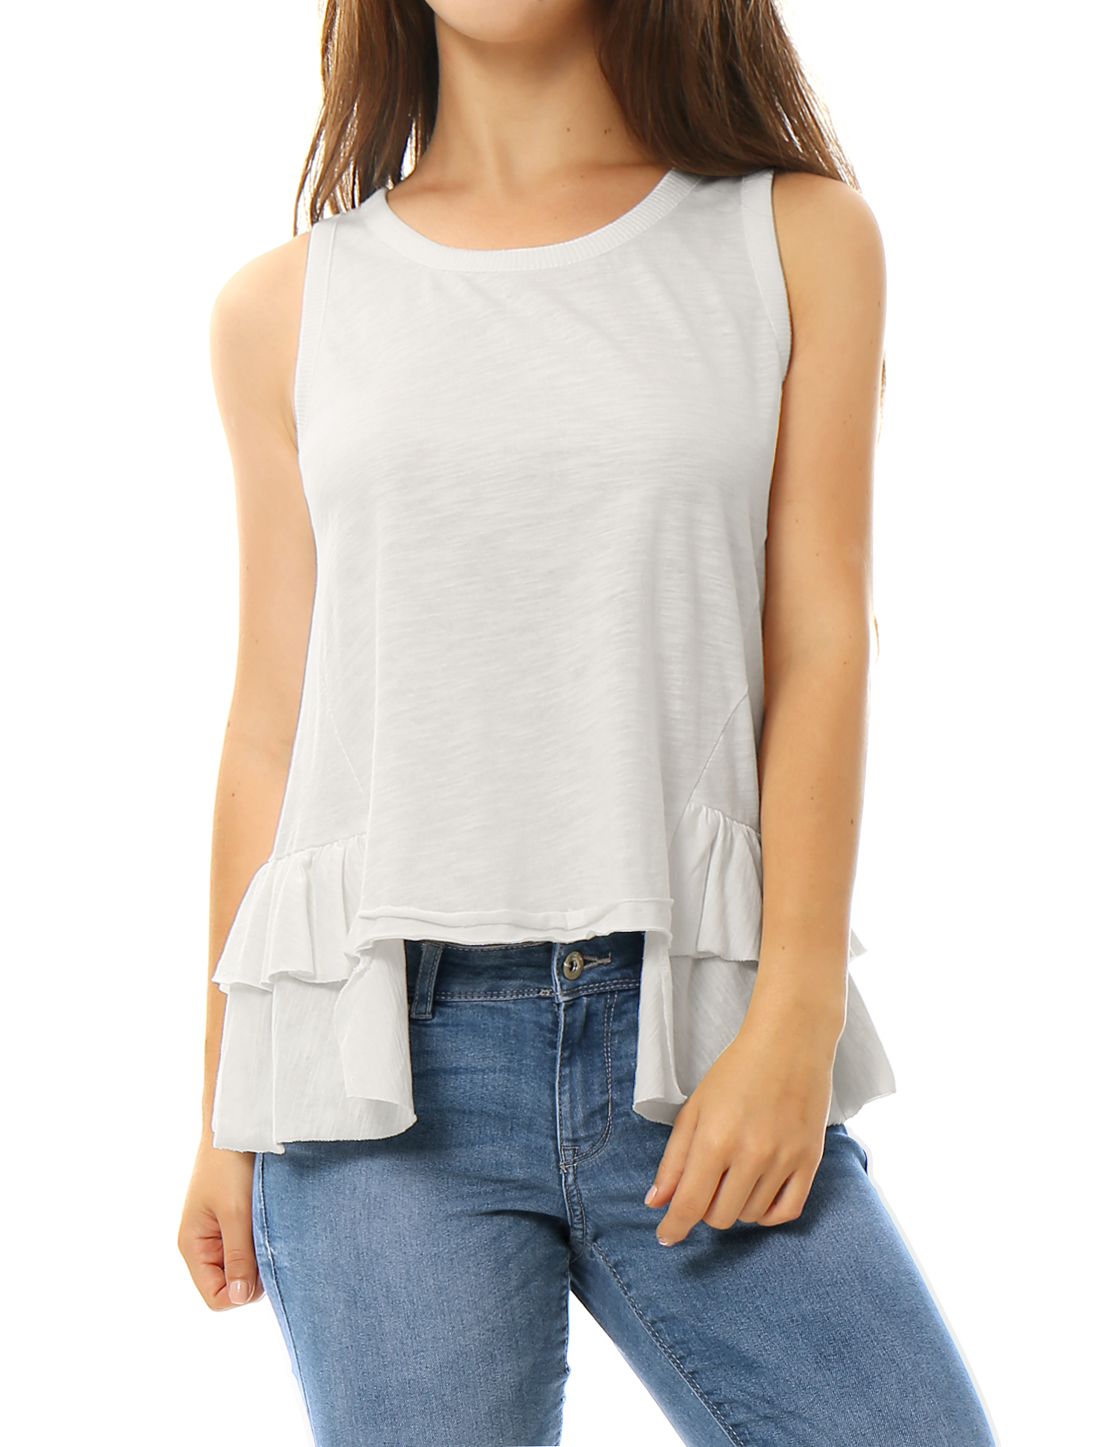 Women Scoop Neckline Layered Ruffle Hem Tank Top White S